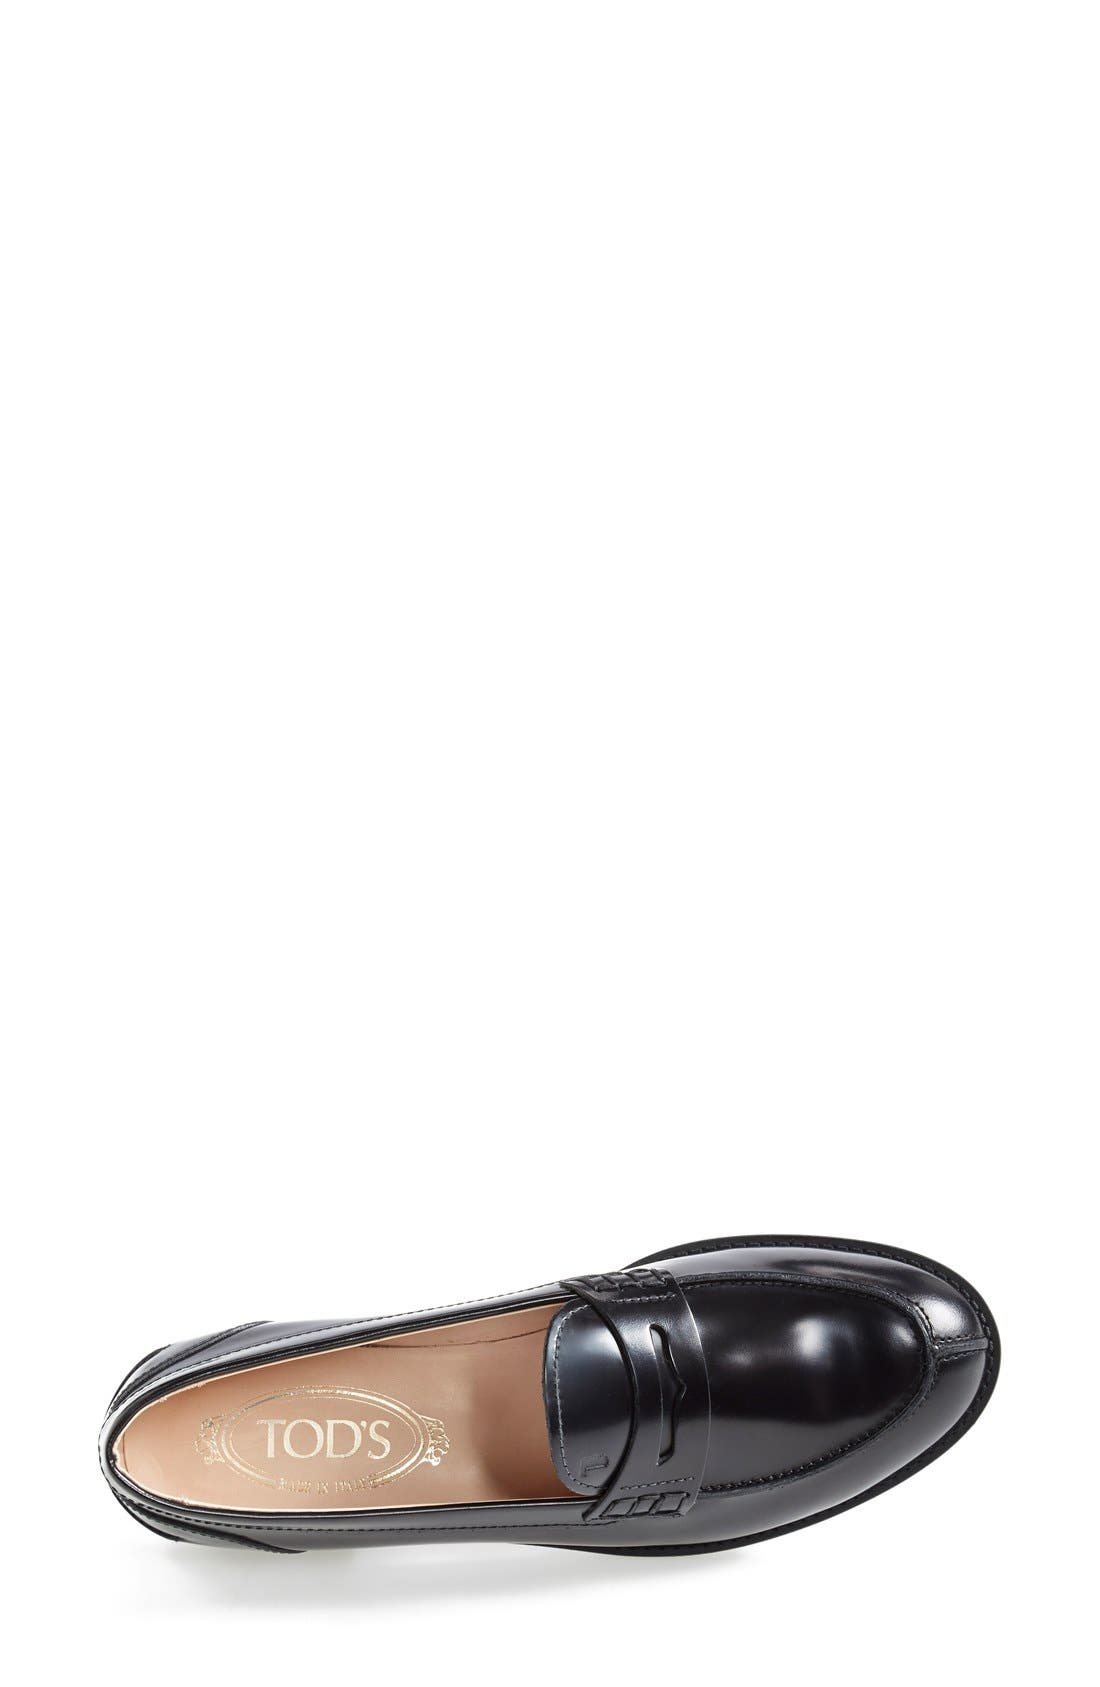 Alternate Image 3  - Tod's 'Classic' Leather Loafer (Women)